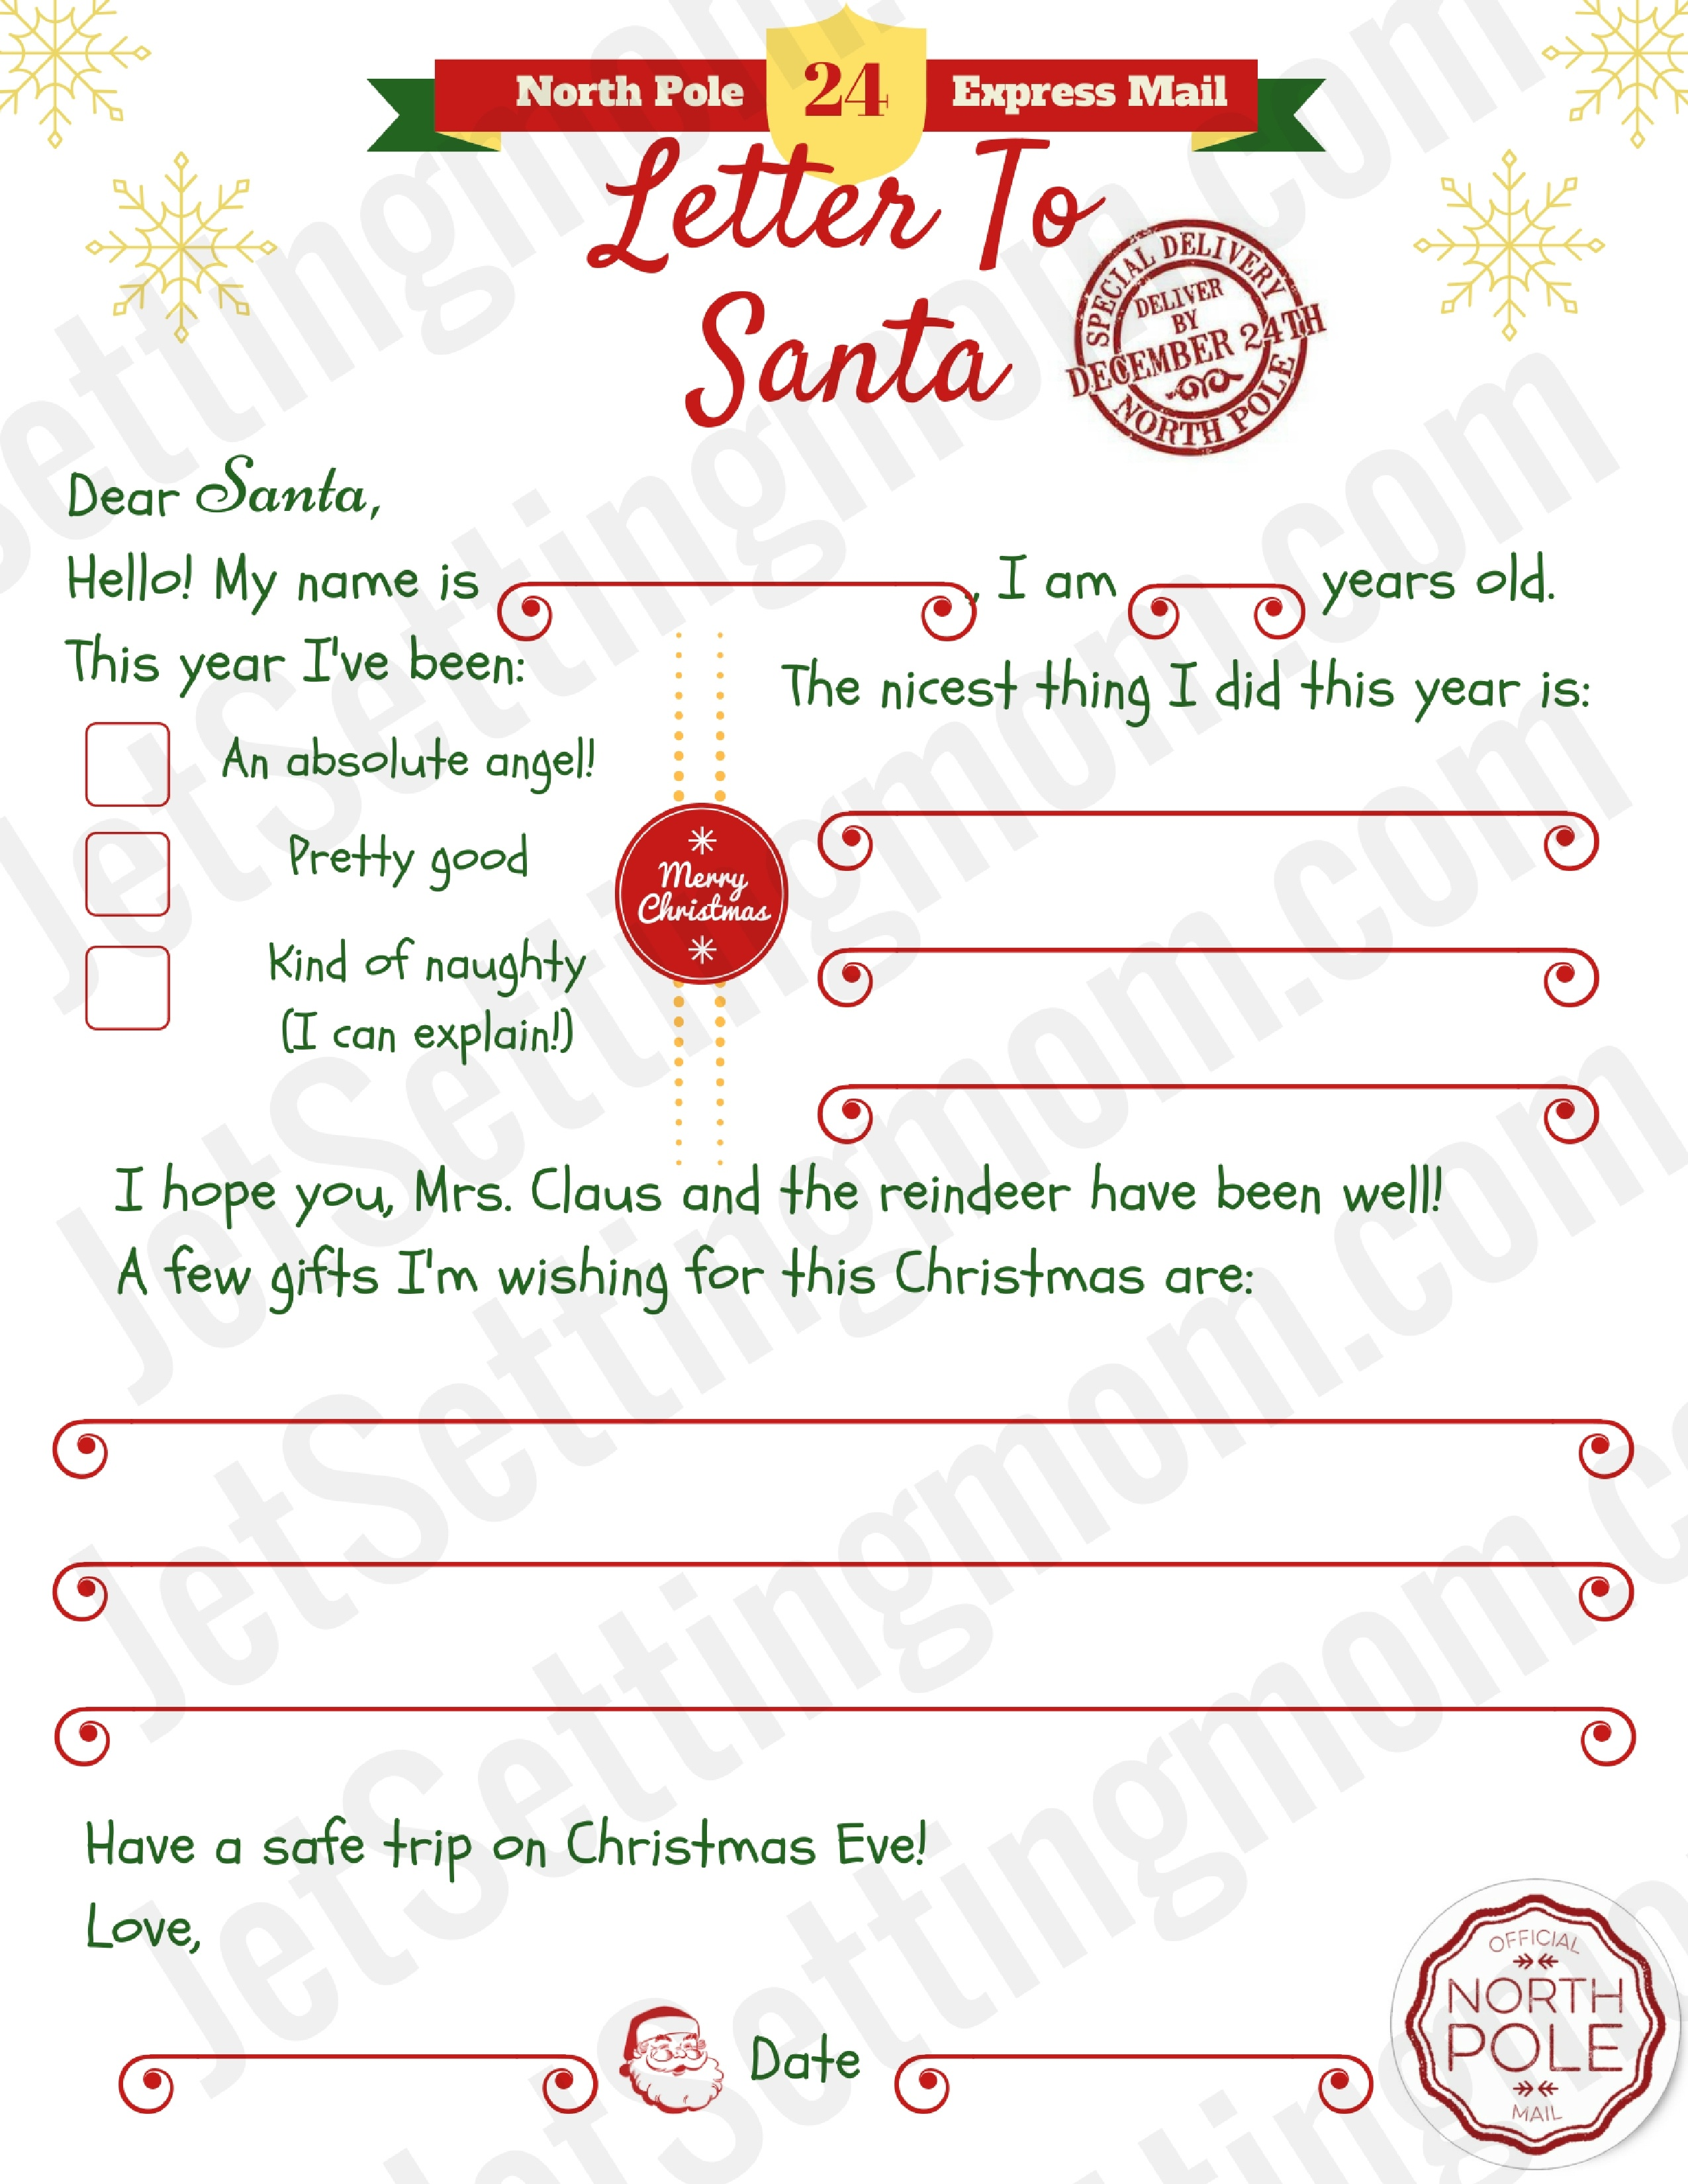 Free Printable Letter To Santa Template - Writing To Santa Made Easy! - Free Santa Templates Printable